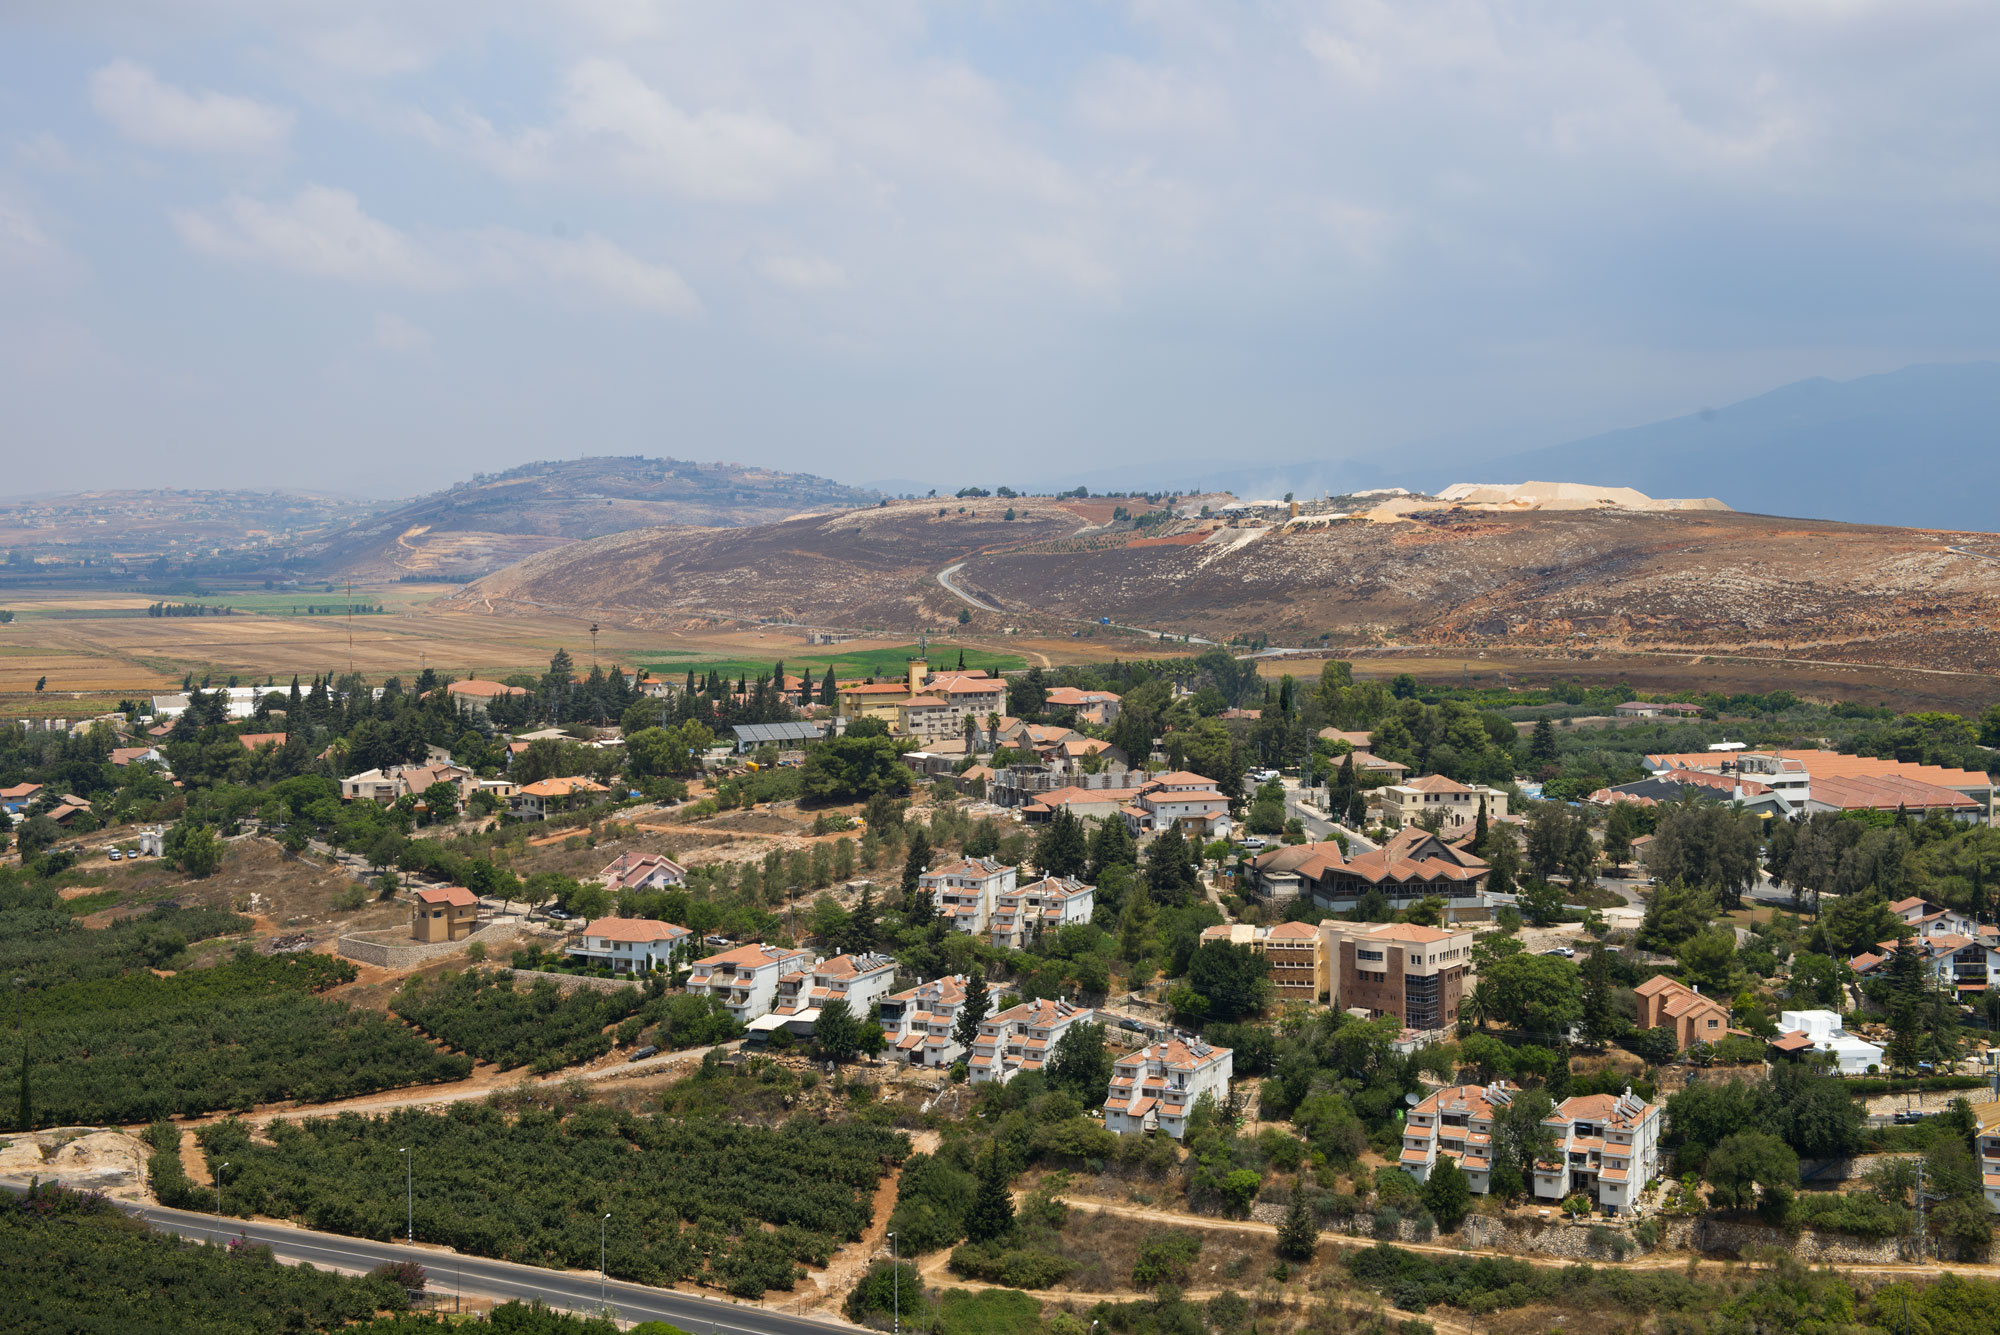 A view in to Lebanon from Northern Israel